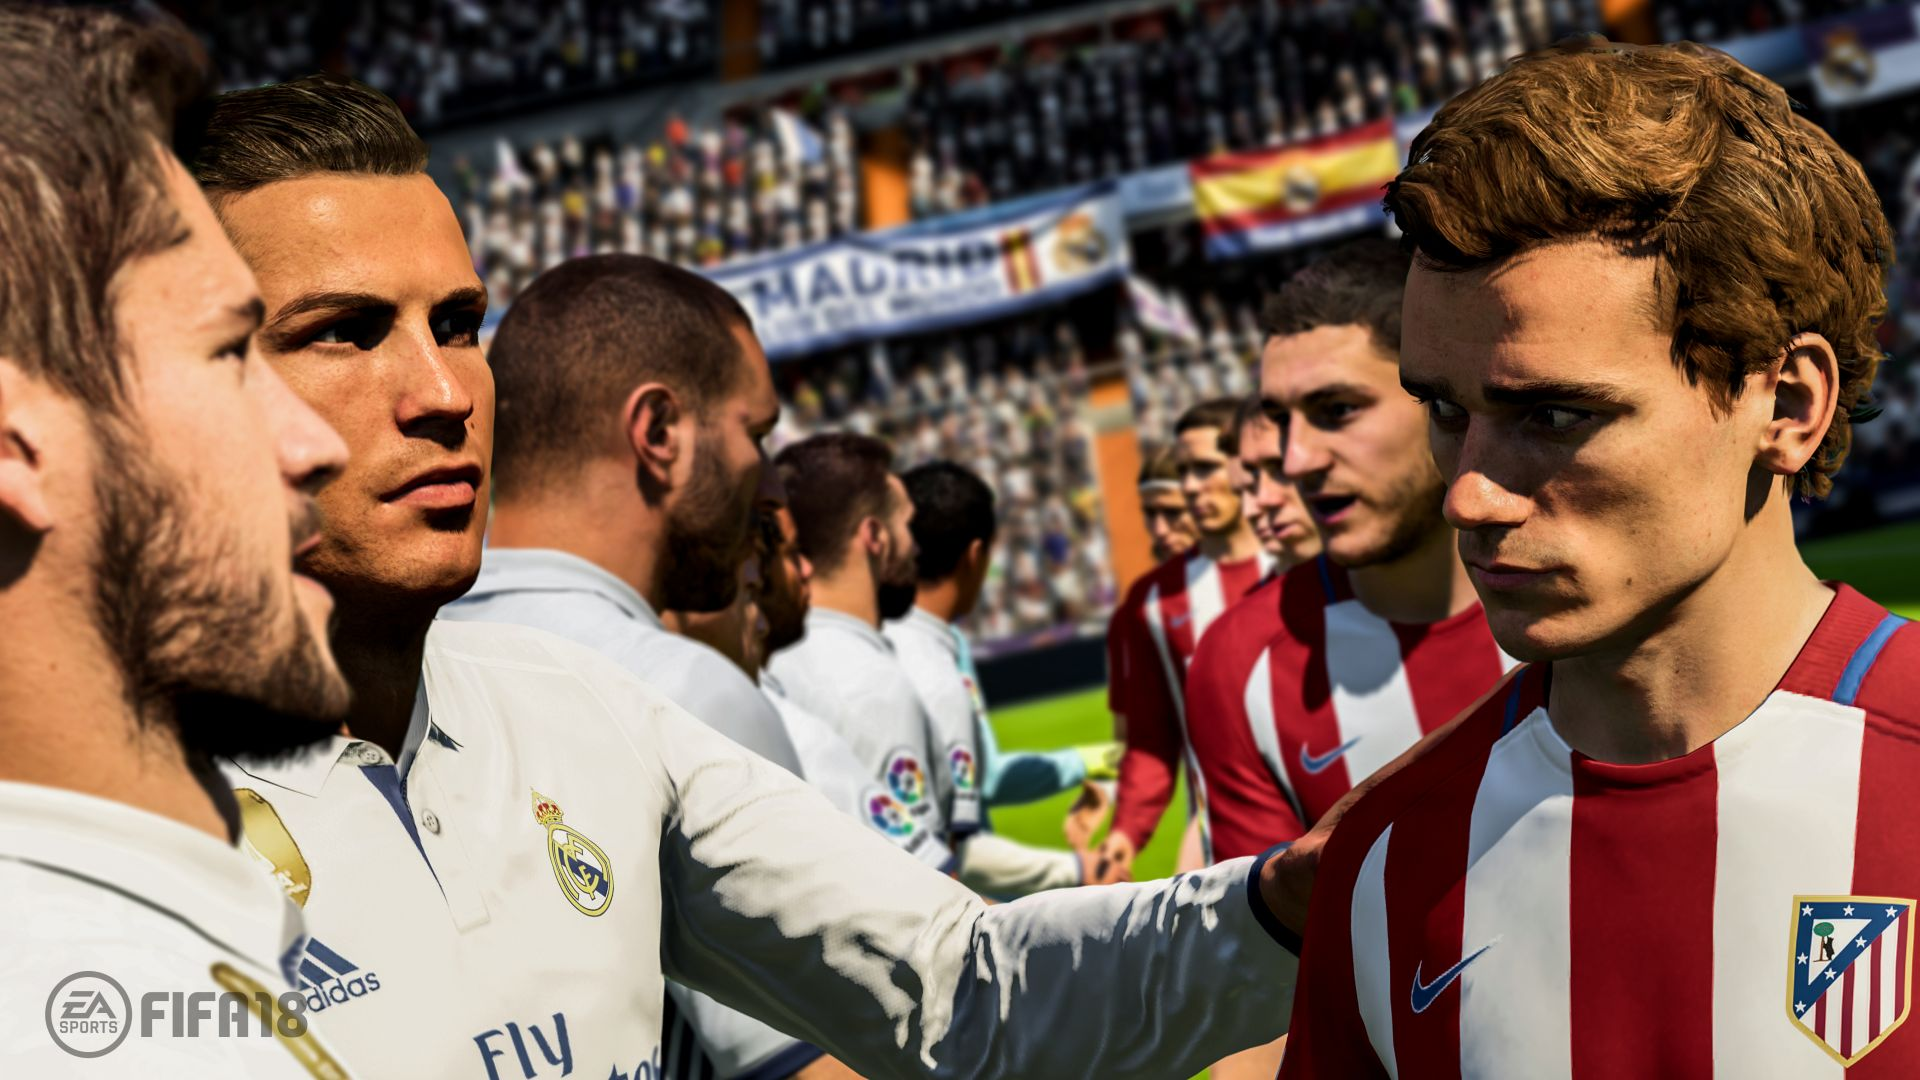 FIFA 18, 5k, screenshot, E3 2017 (horizontal)